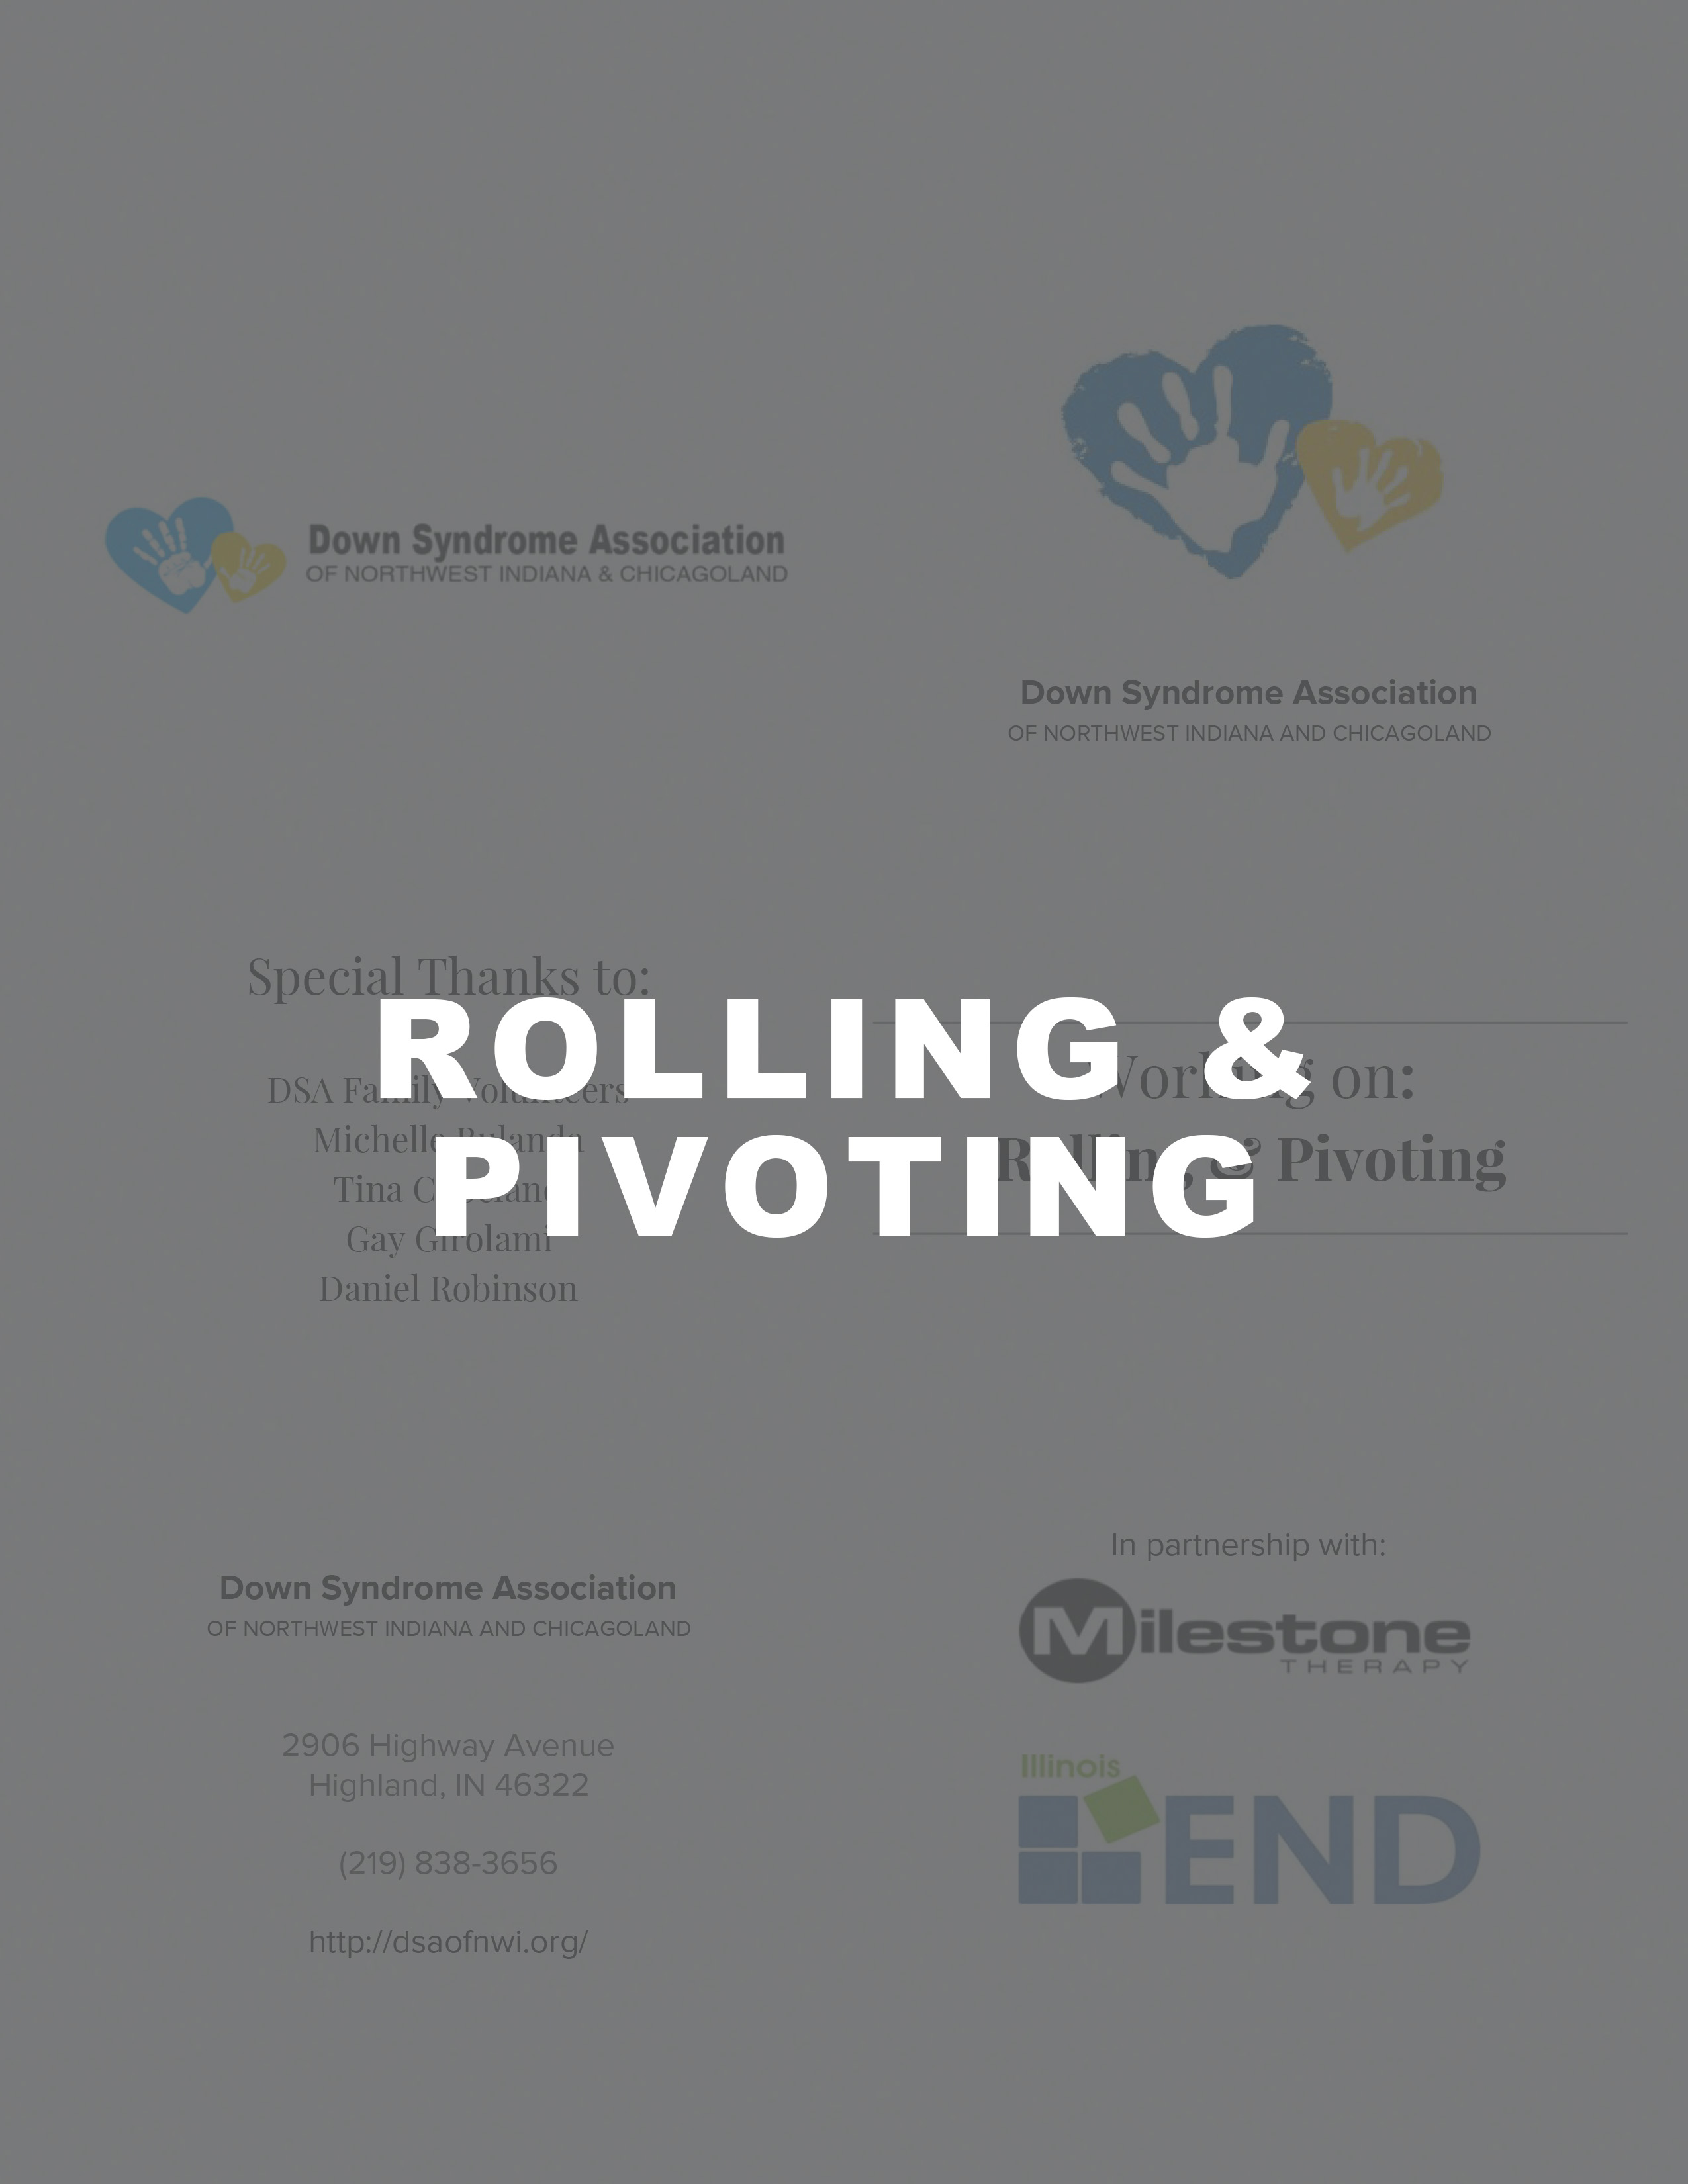 Rolling & Pivoting